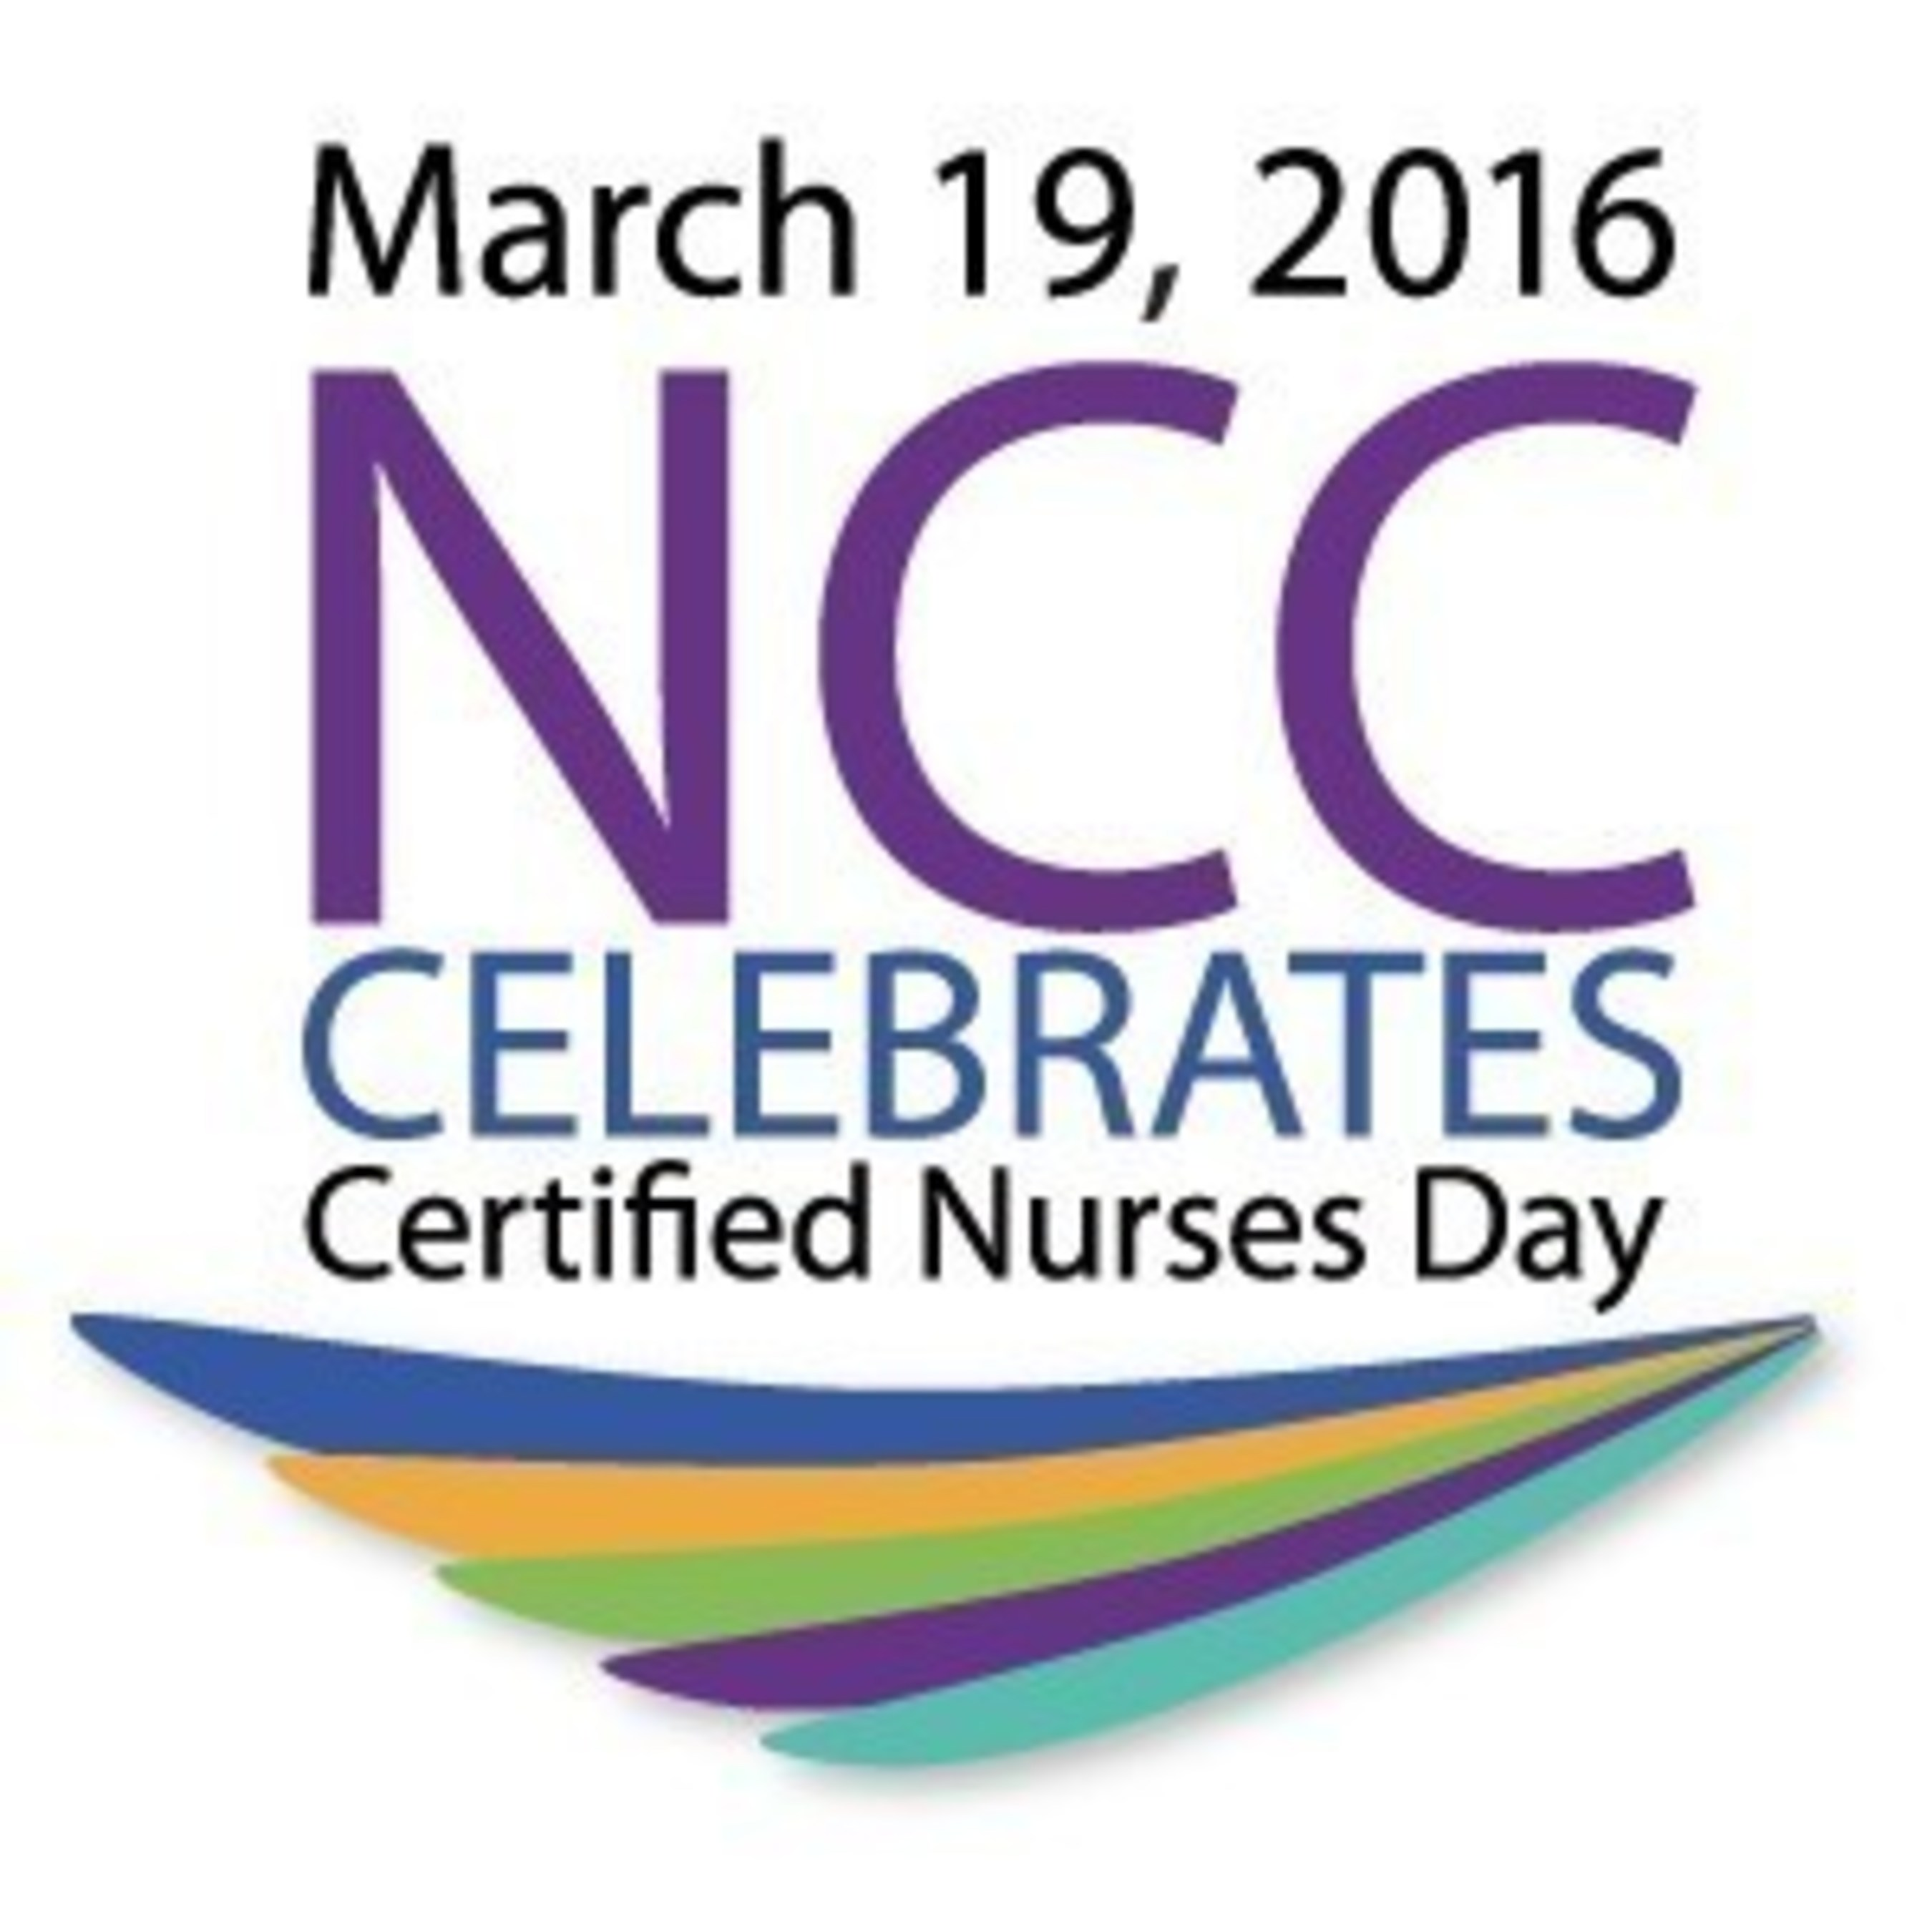 Certified Nurses App Launches For Certified Nurses Day March 19 2016